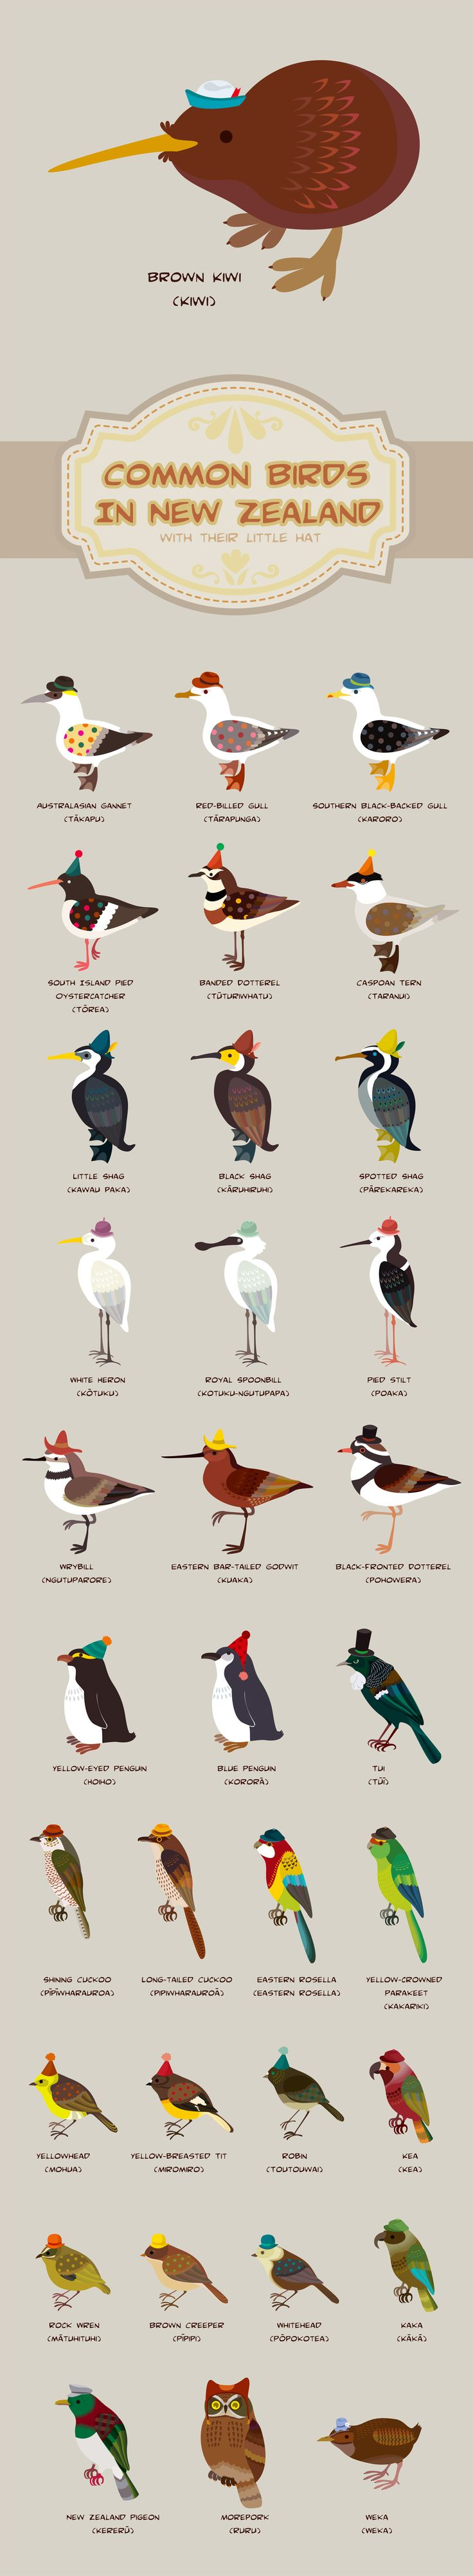 New Zealand Birds With Their Hats.